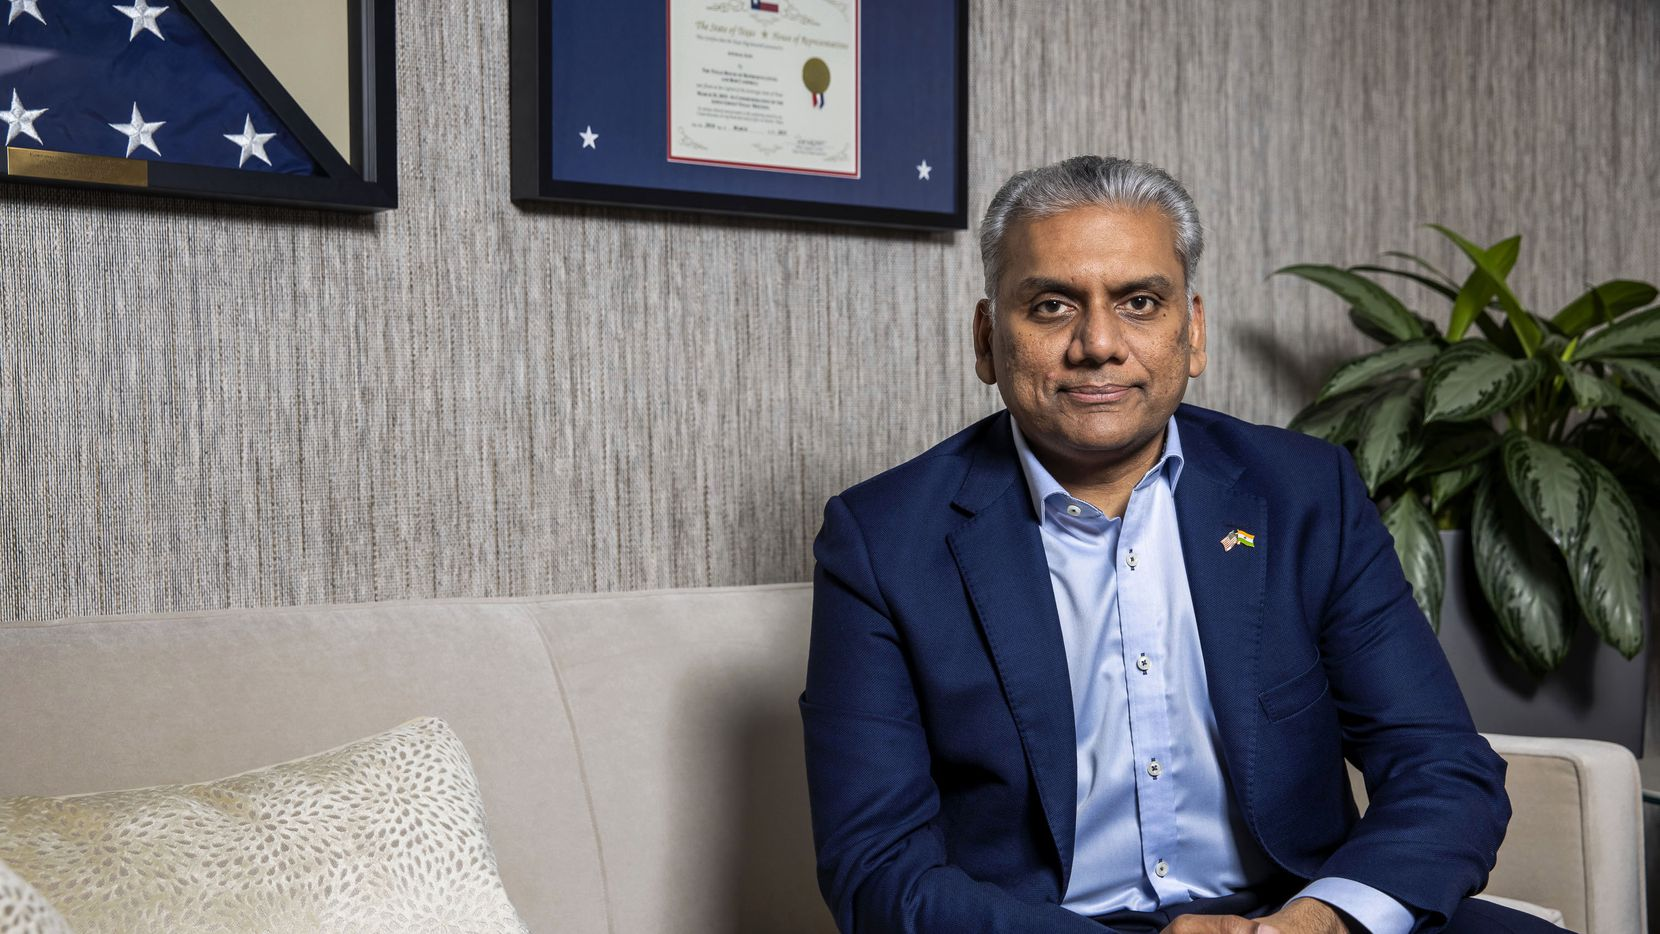 """Access Healthcare Chairman Anurag Jain poses for a portrait at his office in Dallas on Monday, May 17, 2021. Jain traveled to India in April to visit his critically ill mother, who had contracted the novel coronavirus at the beginning of what would soon become the second wave of COVID-19 in his home country. Since returning, Jain has worked with partners to send 3,200 oxygen concentrators to India and is arranging a shipment of 1,700 more. """"People around the world have been incredibly generous,"""" he said. """"The human spirit comes alive in times like this."""""""